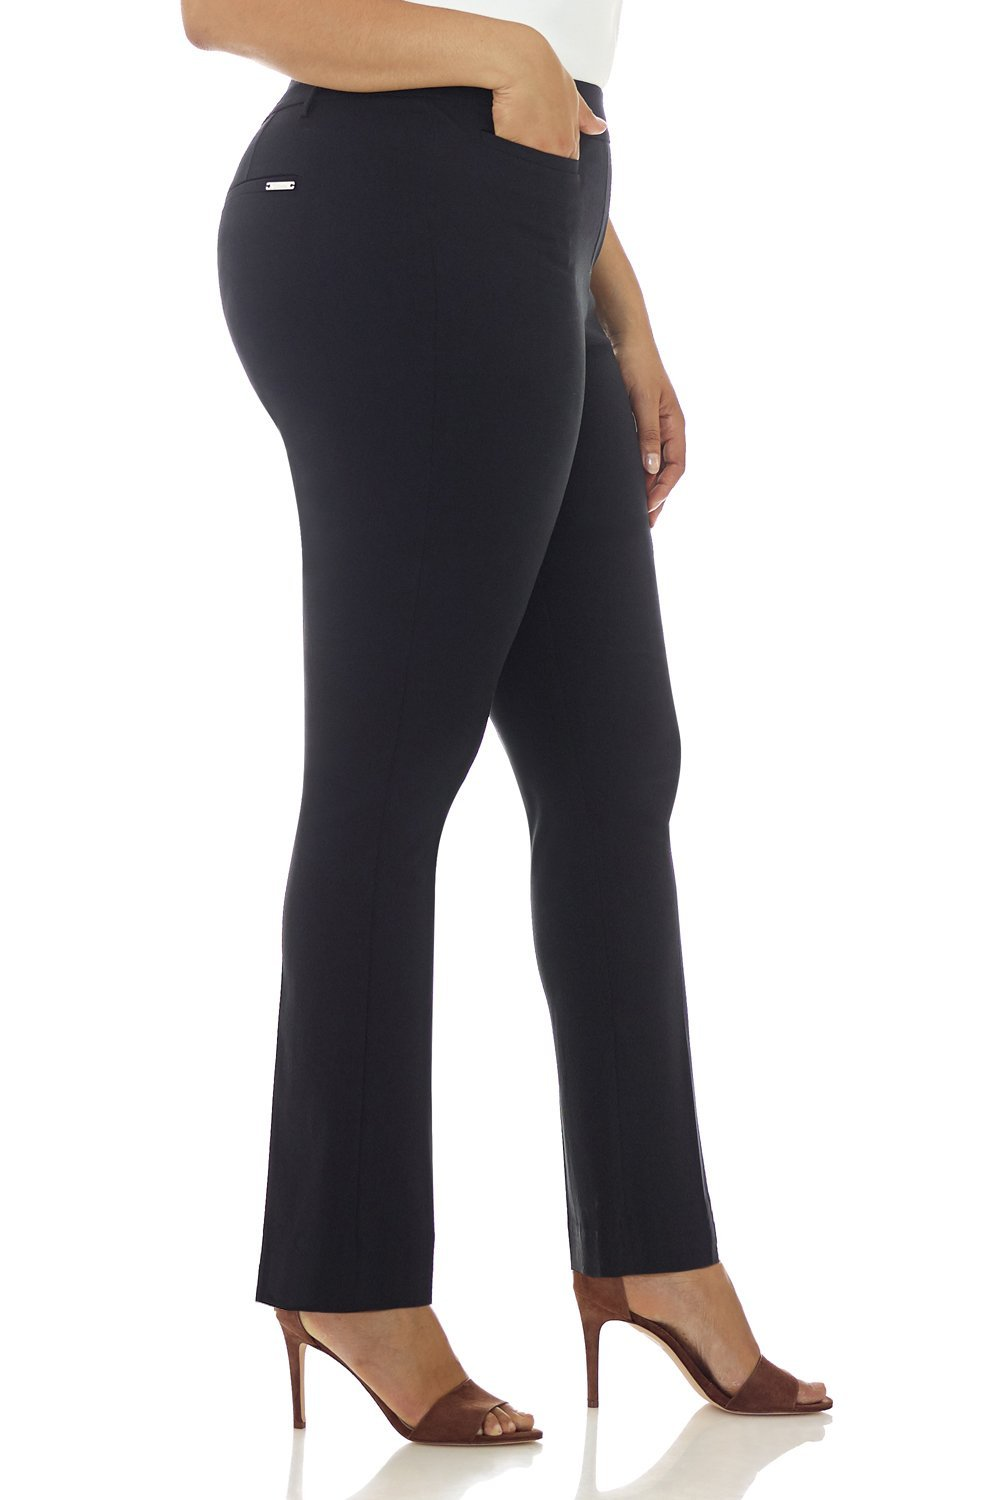 Rekucci Curvy Woman Ease in to Comfort Straight Leg Plus Size Pant w/Tummy Control (18W,Black) by Rekucci (Image #2)